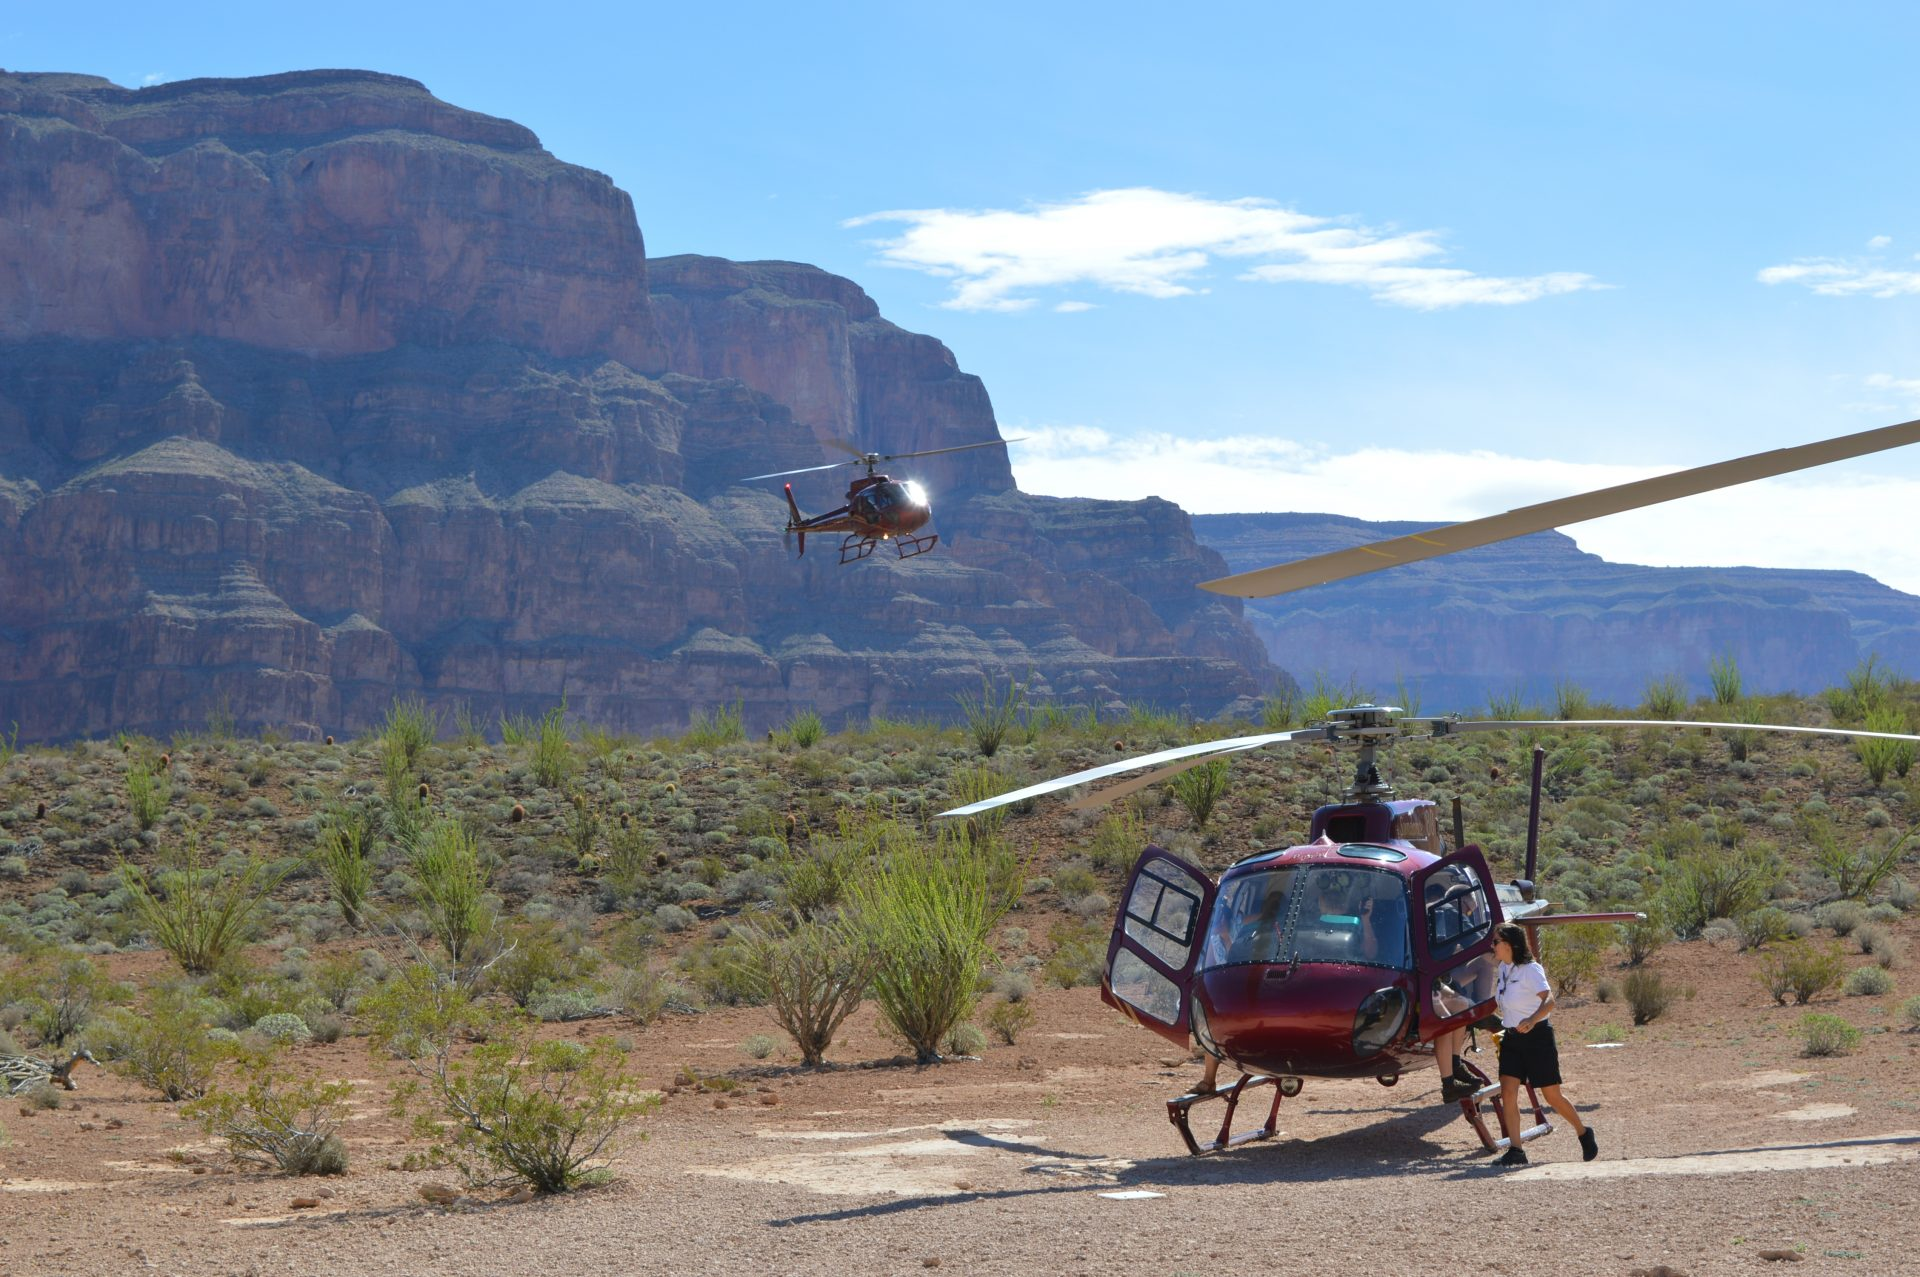 helicopters landing in grand canyon with Helicopter Tour Of The Grand Canyon With Sundance Helicopters on 20141009 cfms Leap Engine Takes Skies additionally Atv Adventure And Grand Canyon Helicopter Flight also 481 in addition LocationPhotoDirectLink G60881 D553004 I48629145 Papillon Grand Canyon Helicopters Boulder City Nevada further Helicopter Tour Of The Grand Canyon With Sundance Helicopters.